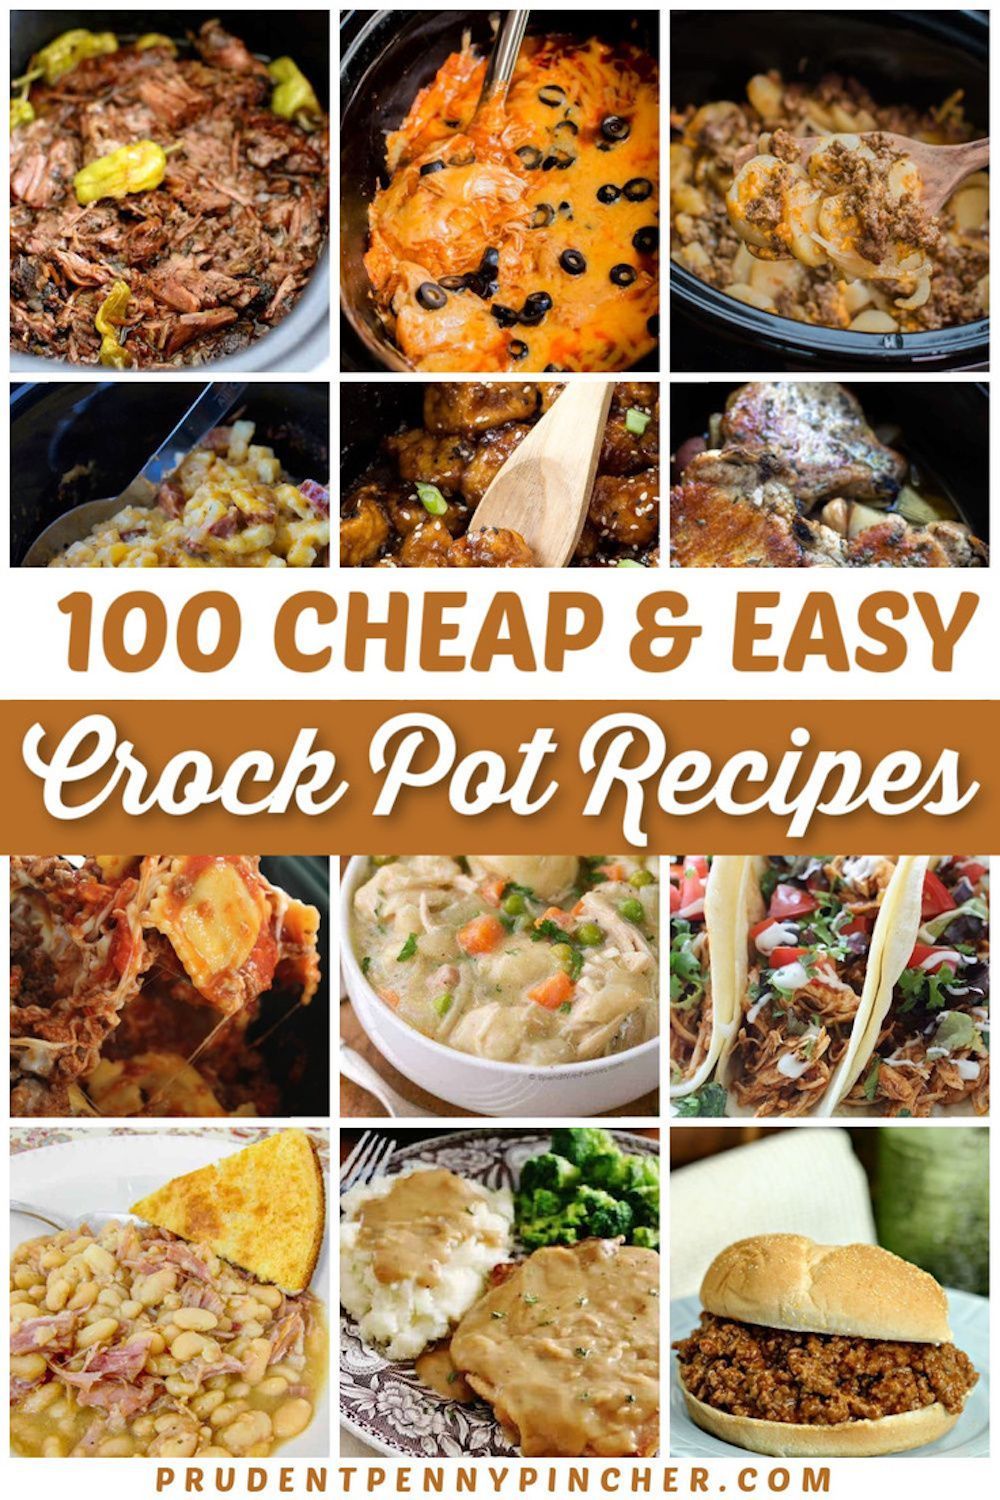 100 Cheap And Easy Crockpot Recipes Chicken Crockpot Recipes Crockpot Chicken Dinners Crockpot Recipes